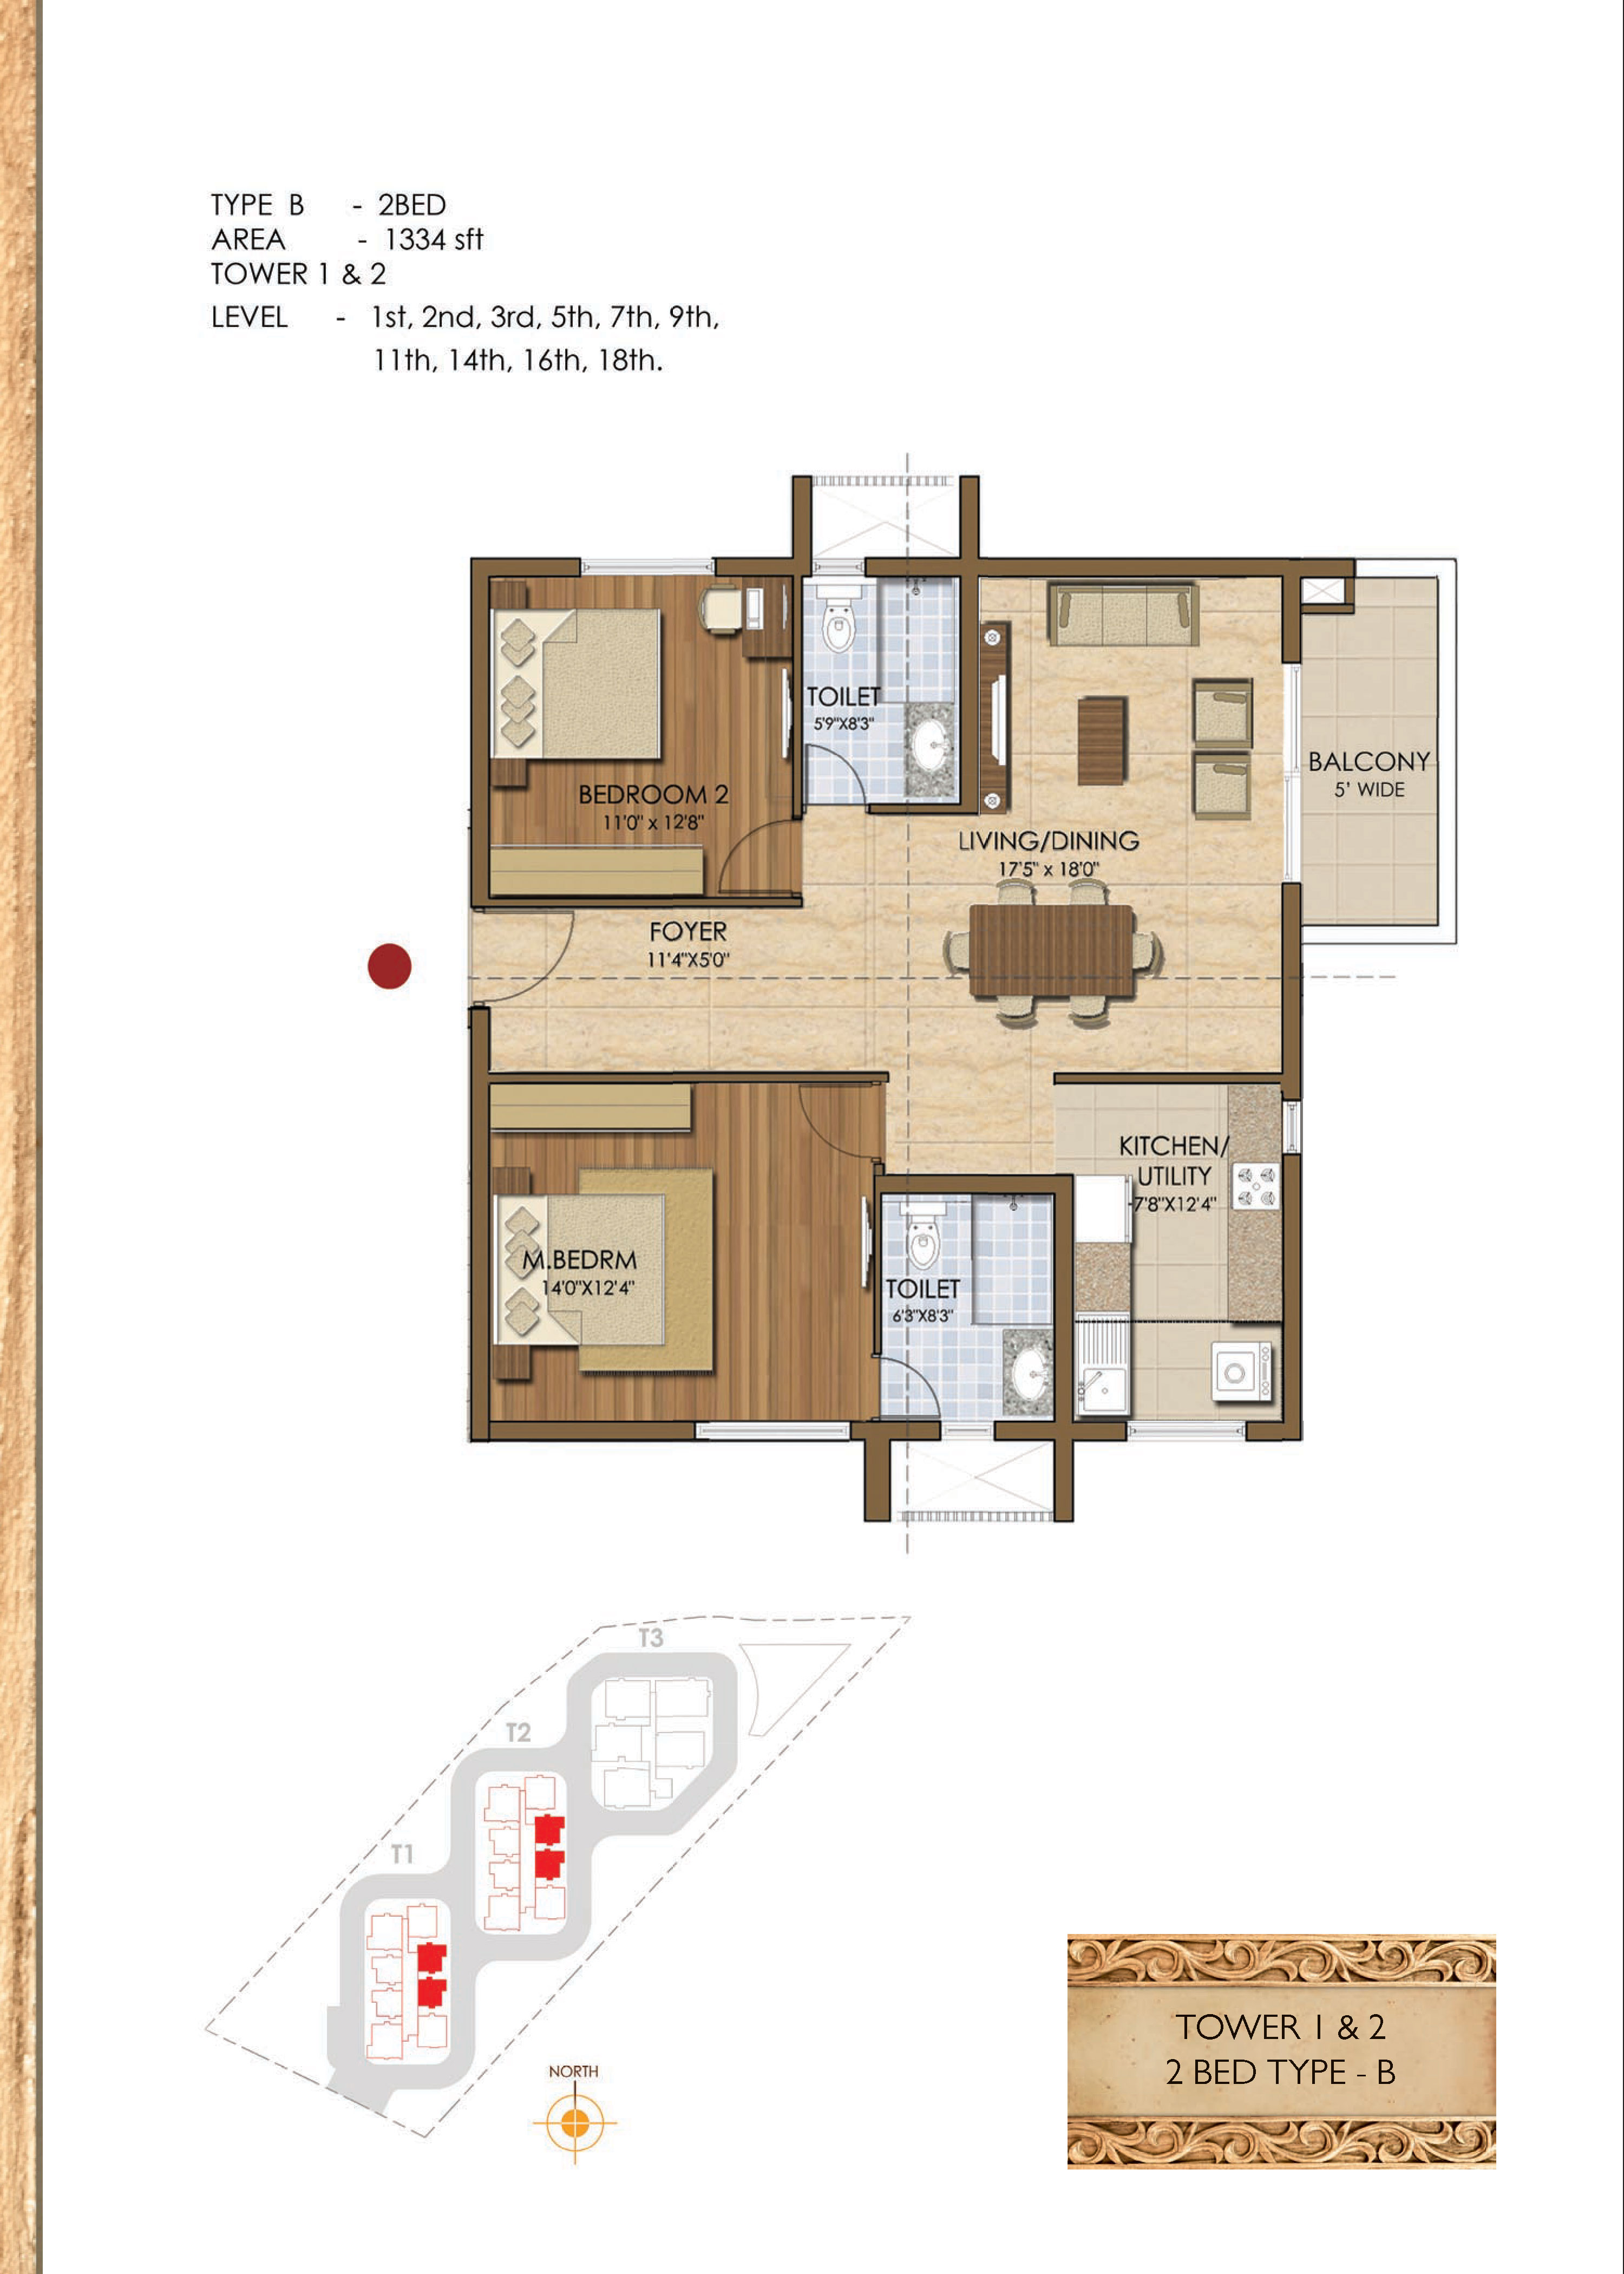 Type B - 2 Bed - 1334 Sq Ft